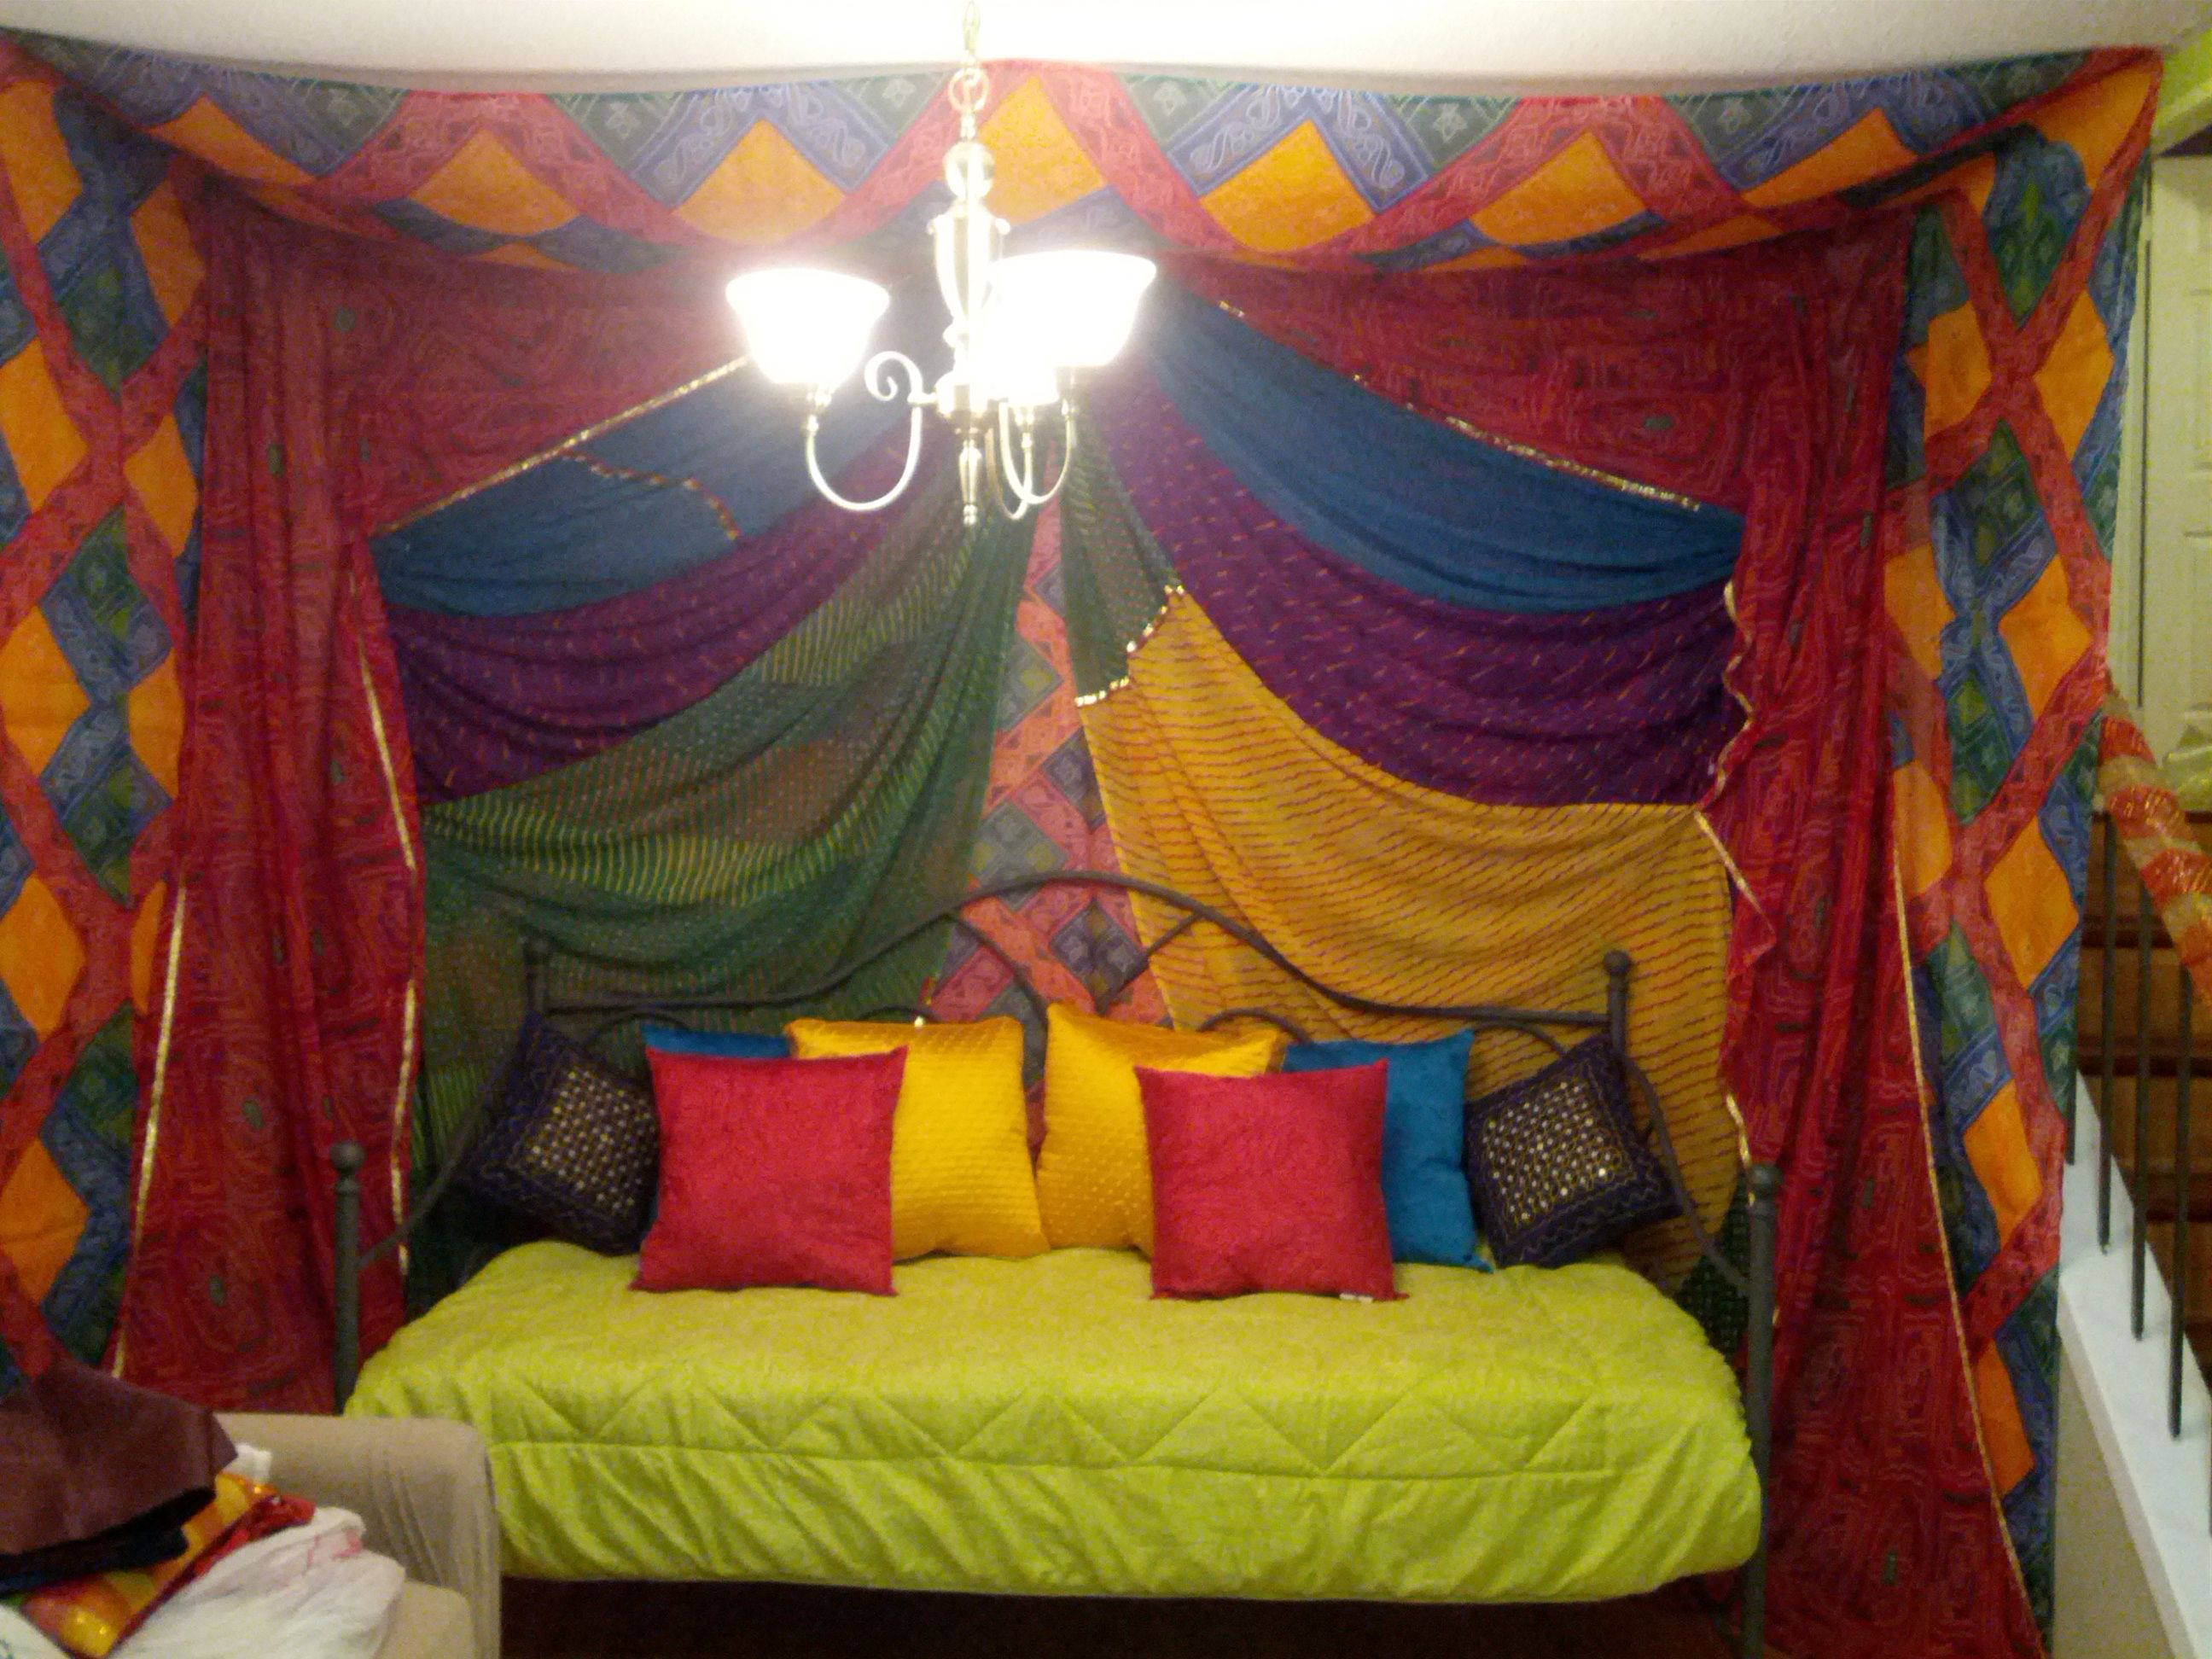 Indian wedding decor at home for a rajasthani inspired for Decorations for a home